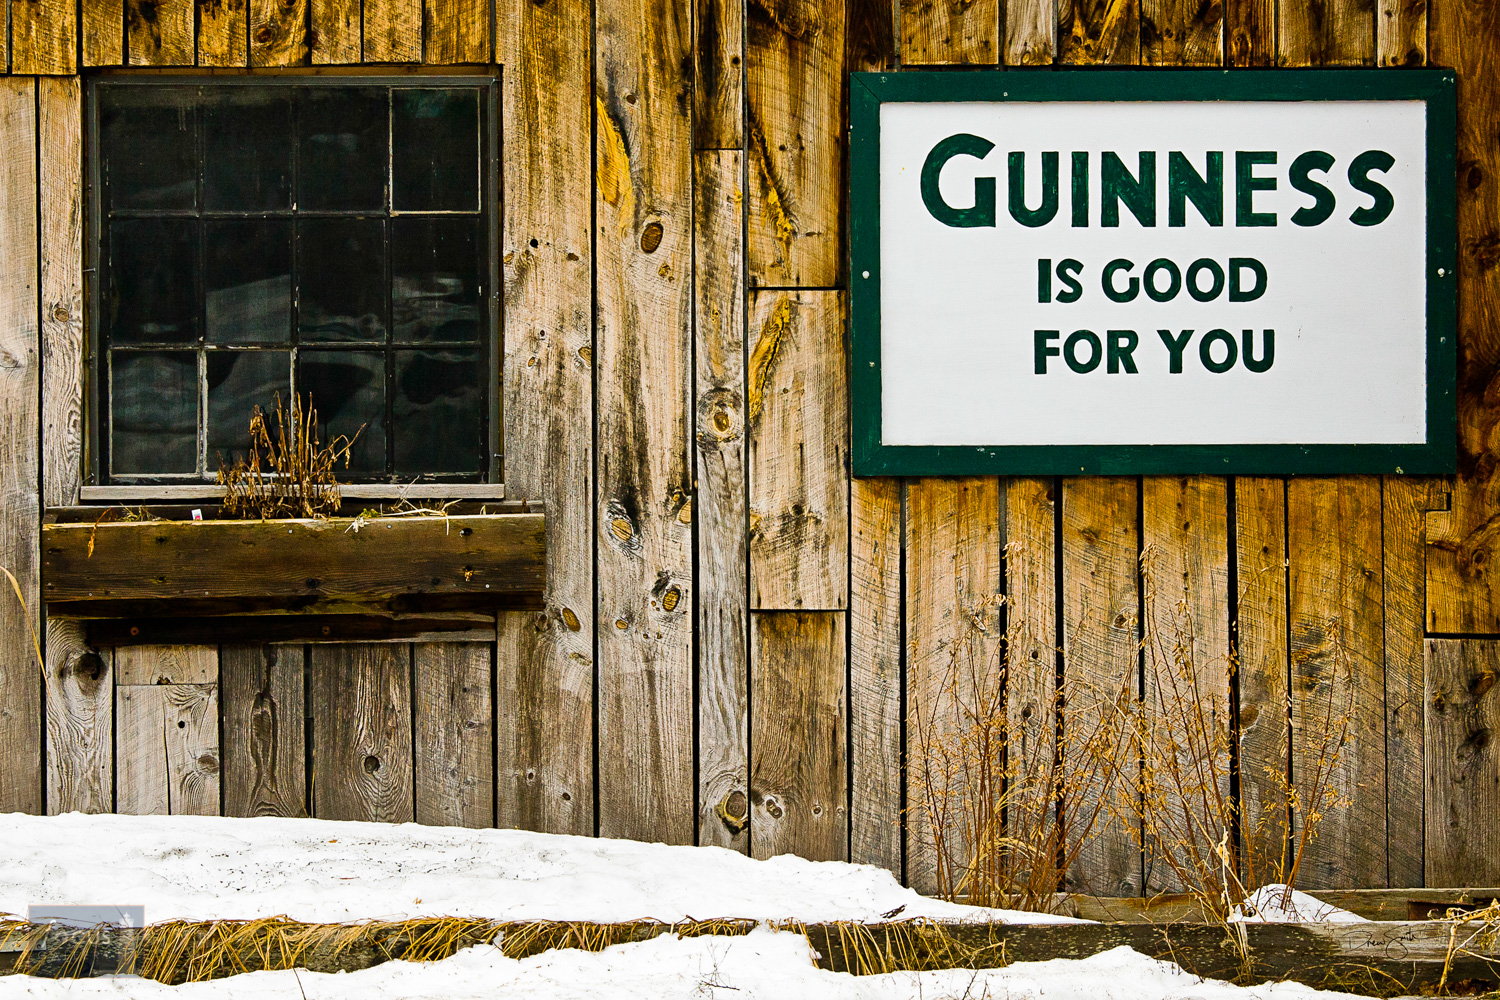 Guinness is good for you beer sign on the side of the Cabbage Shed bar in Elberta.